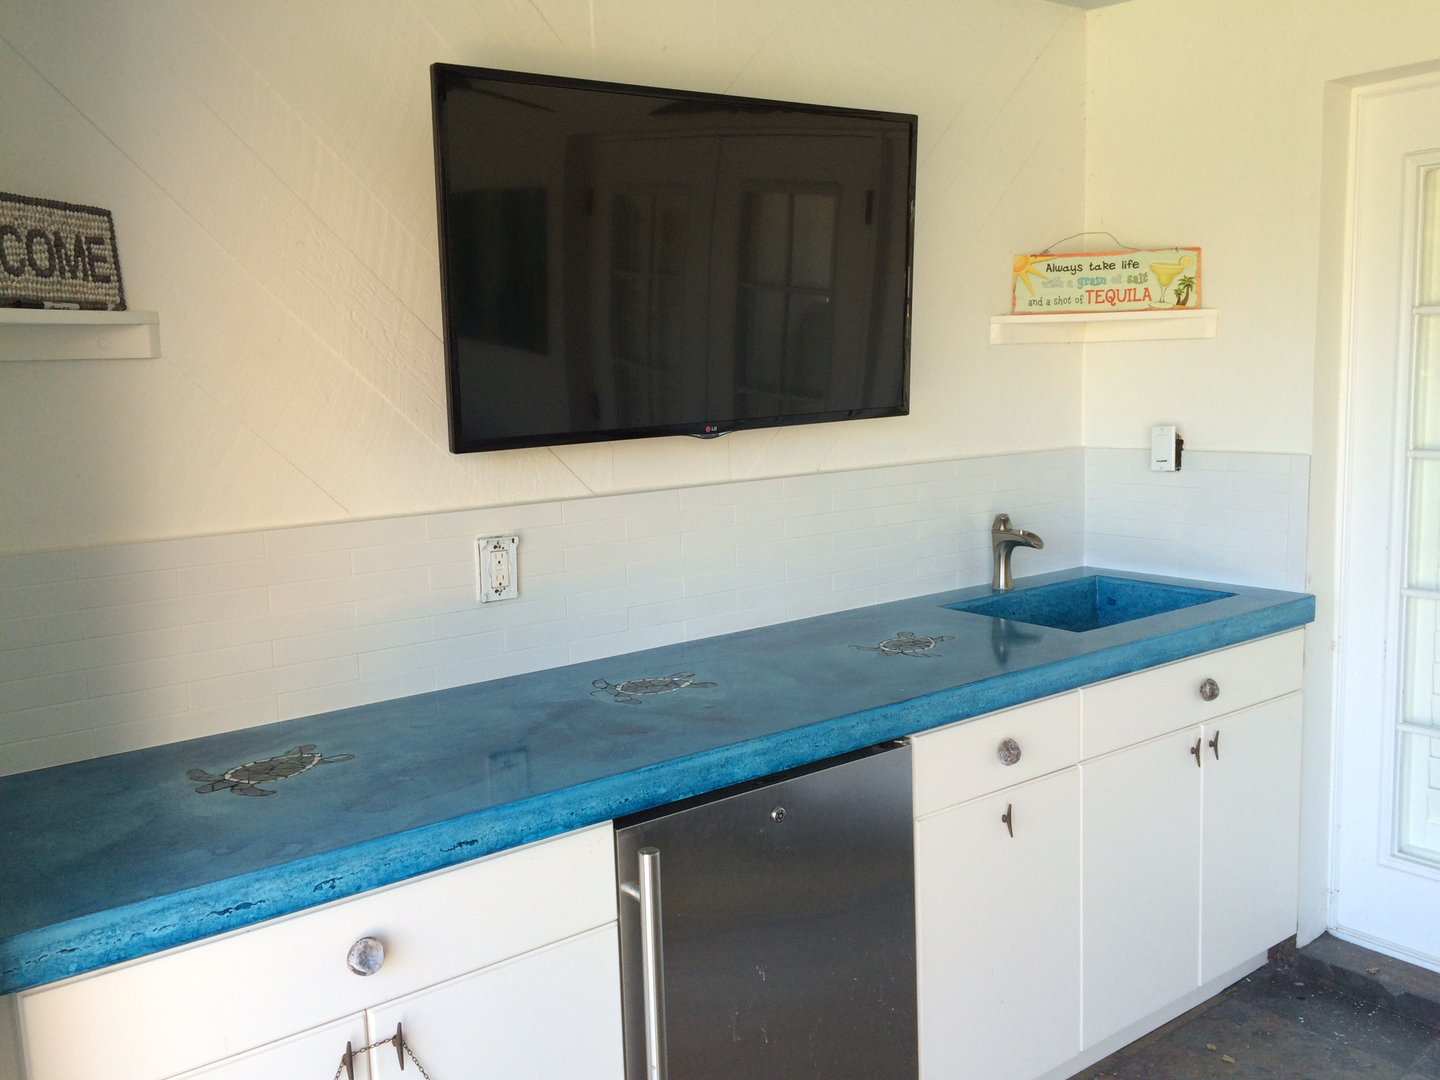 Custom Concrete Counter Tops And Sinks, Custom Concrete Staining Or ...